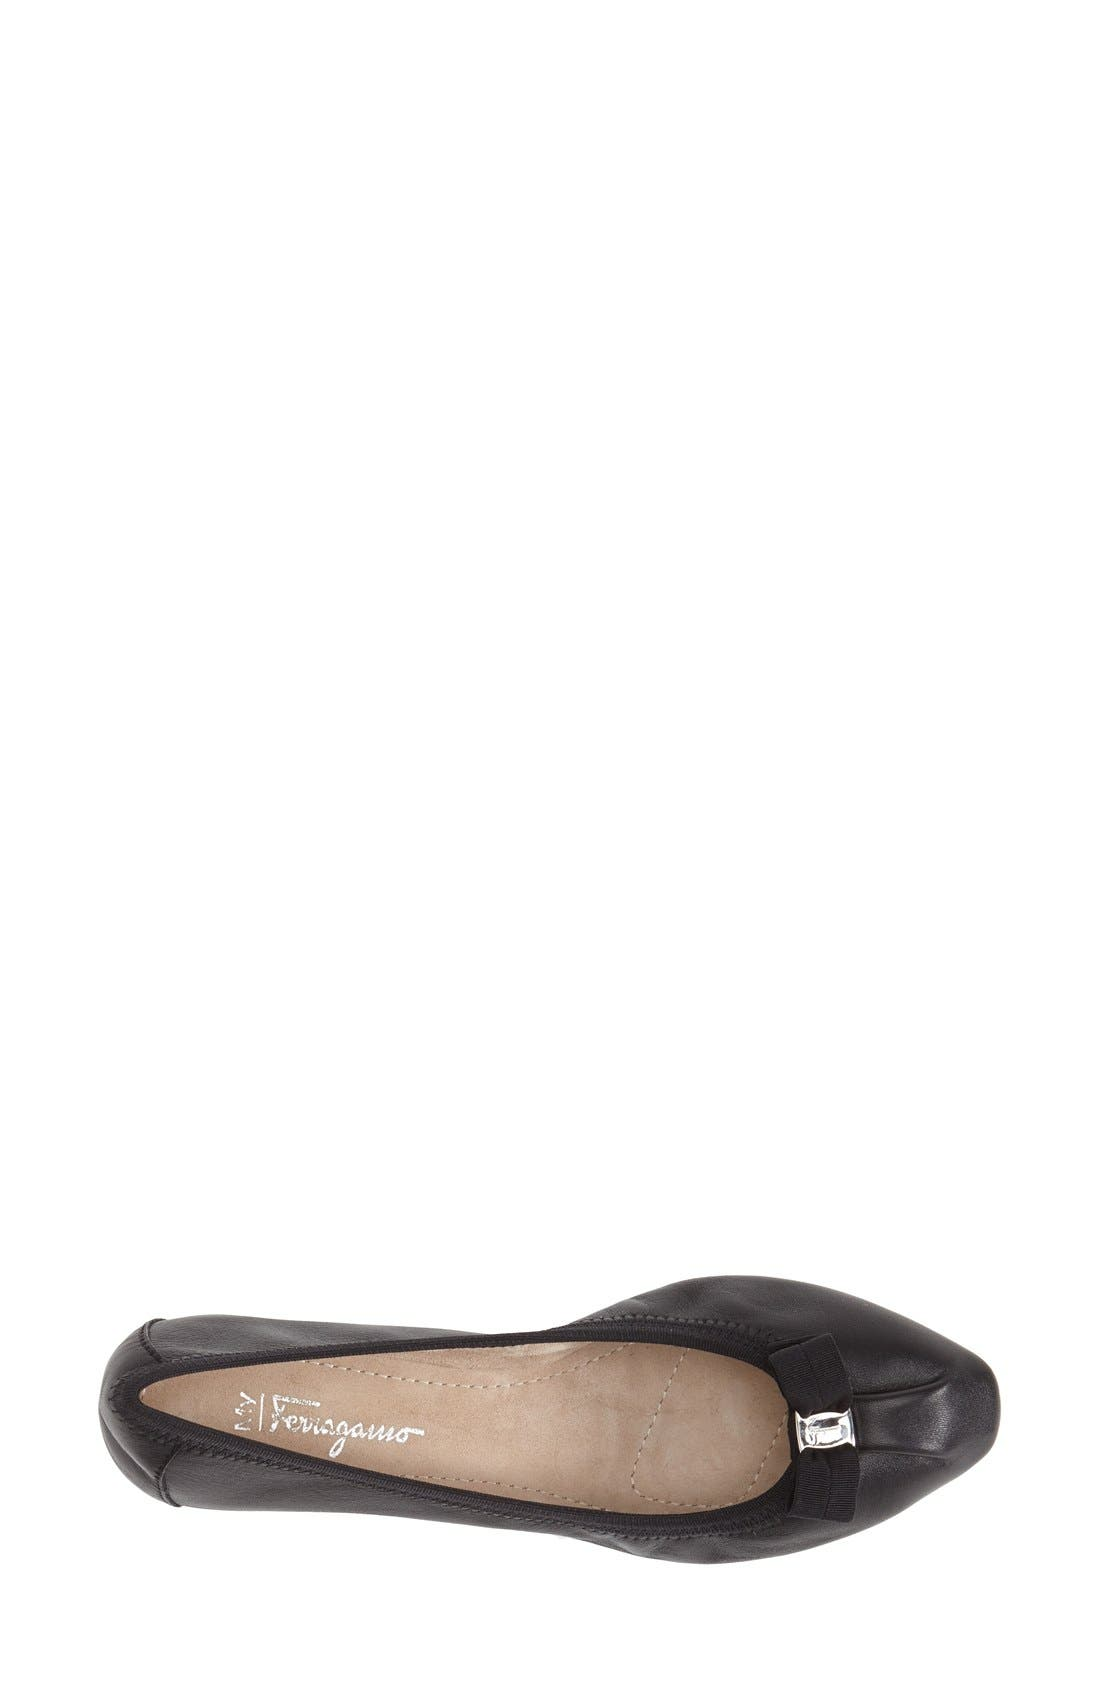 Alternate Image 4  - Salvatore Ferragamo Skimmer Flat (Women)